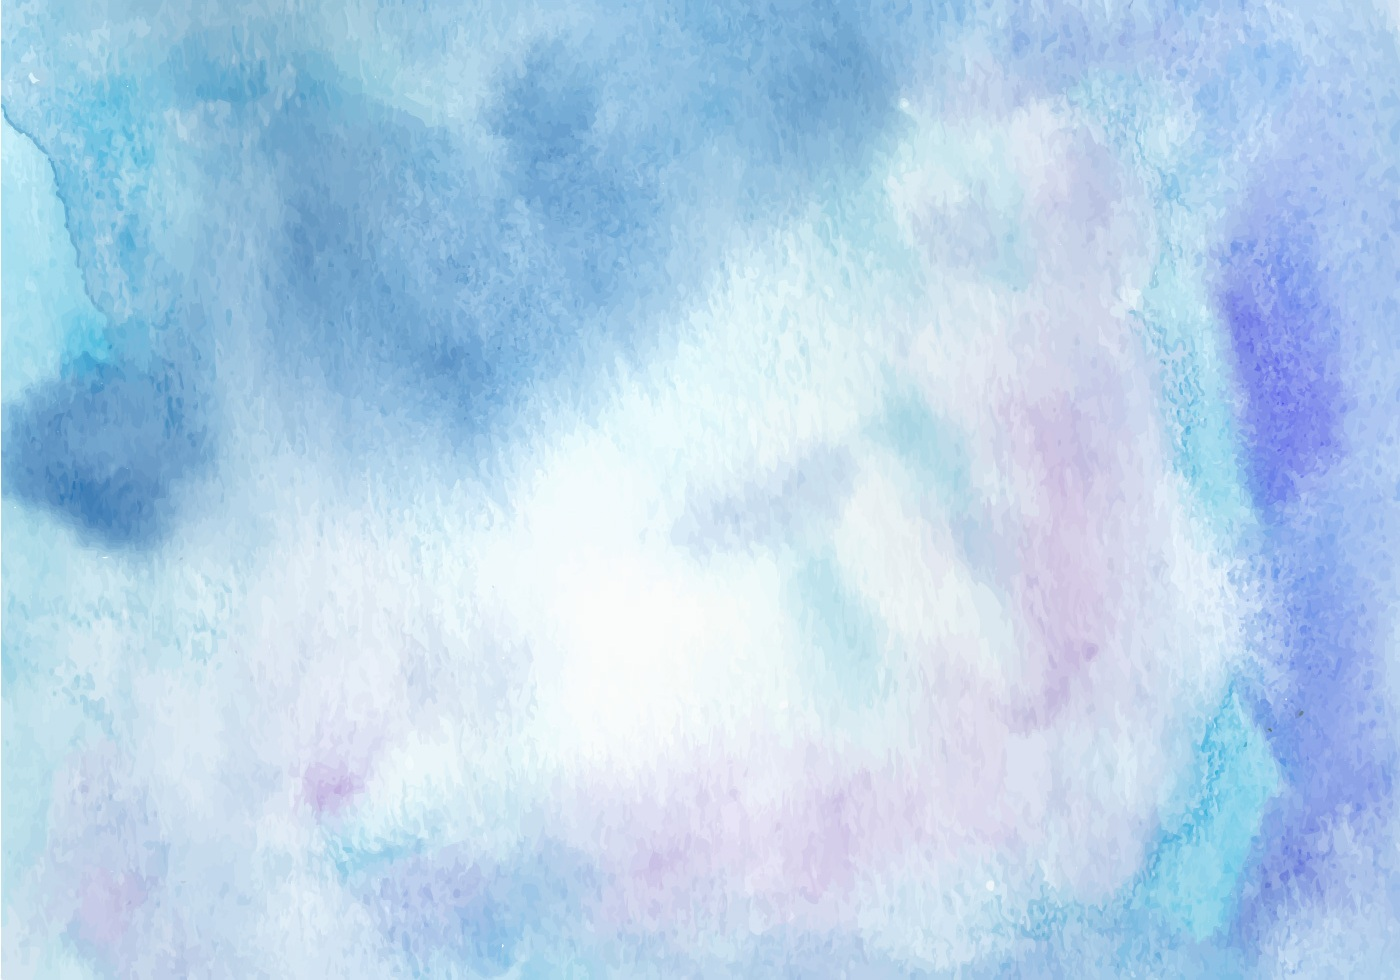 blue watercolor free vector background download free